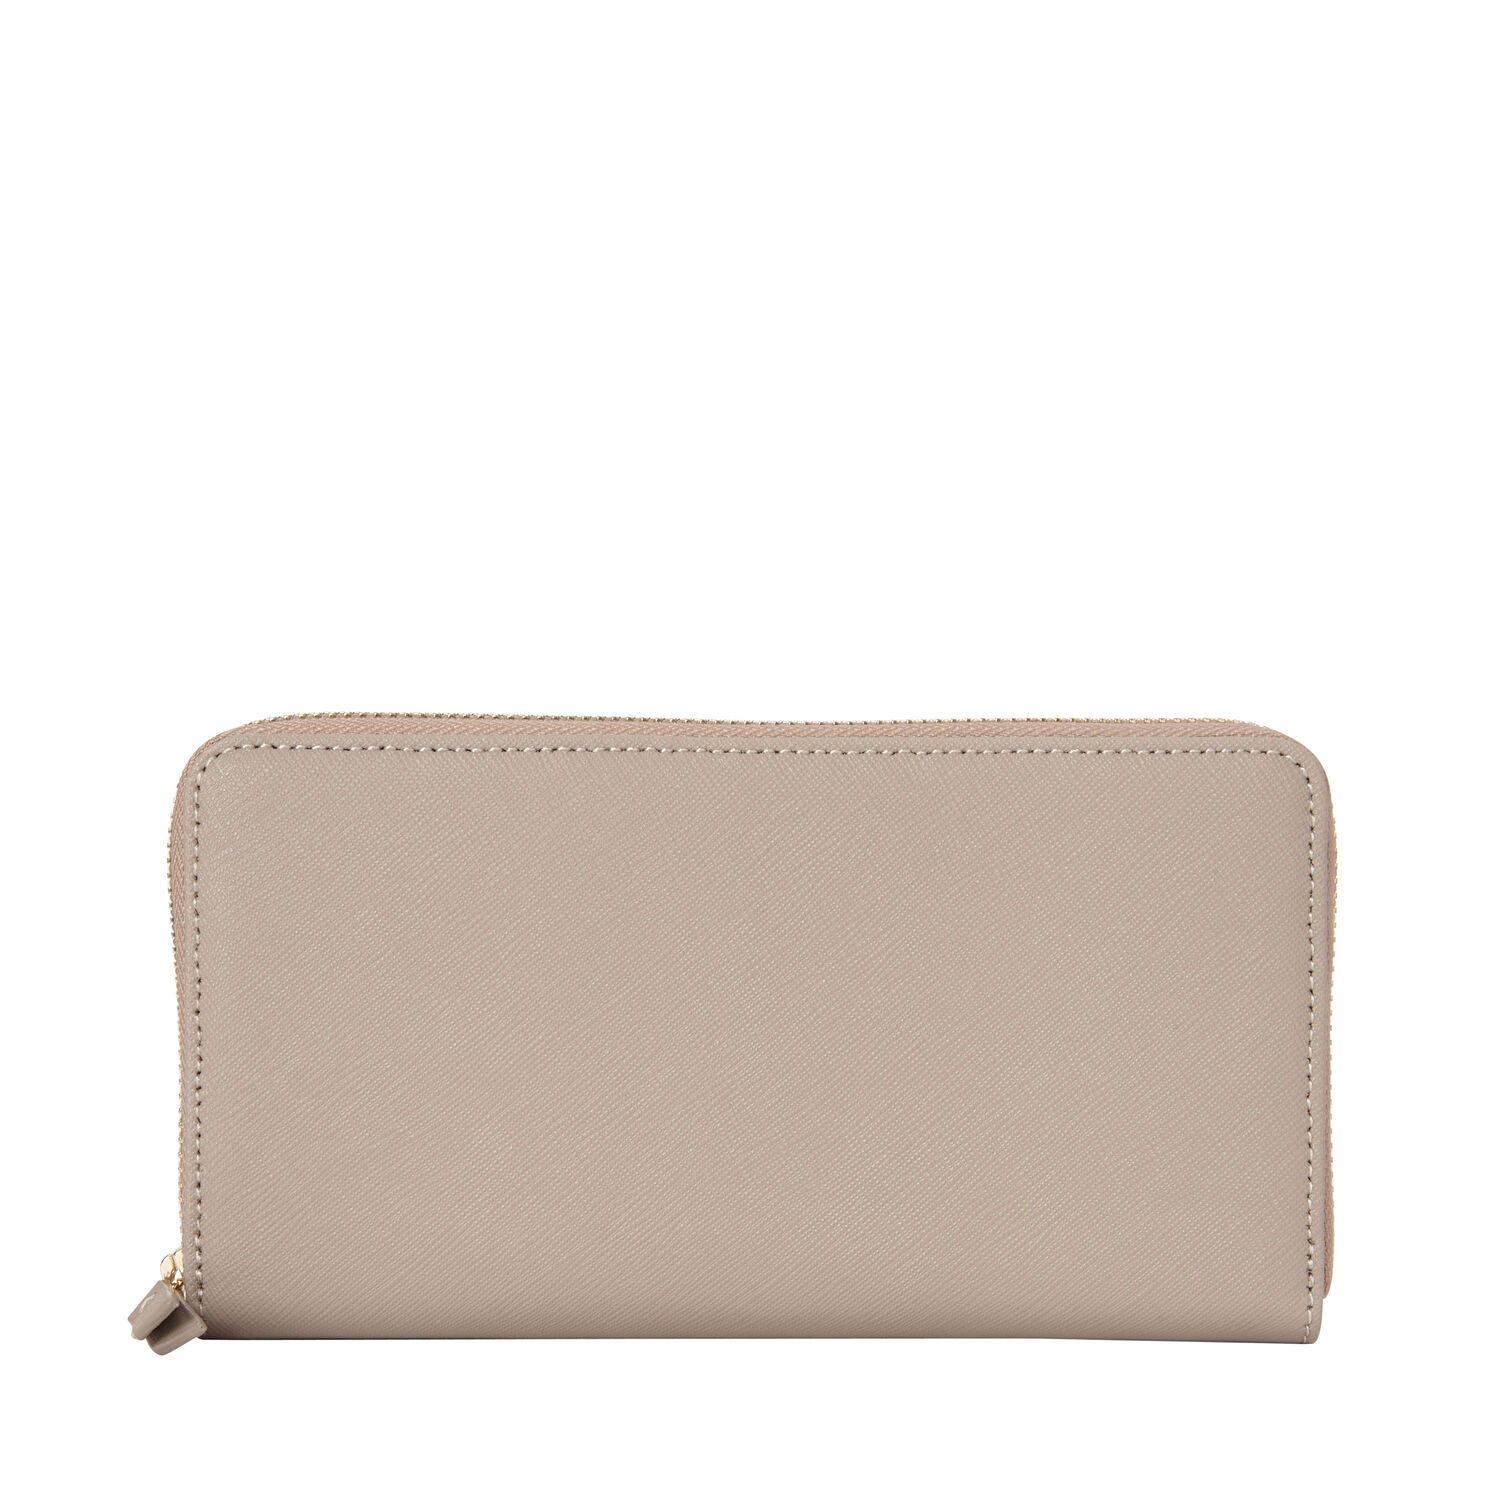 Samsonite Las Leather Zip Around Wallet In The Color Light Grey